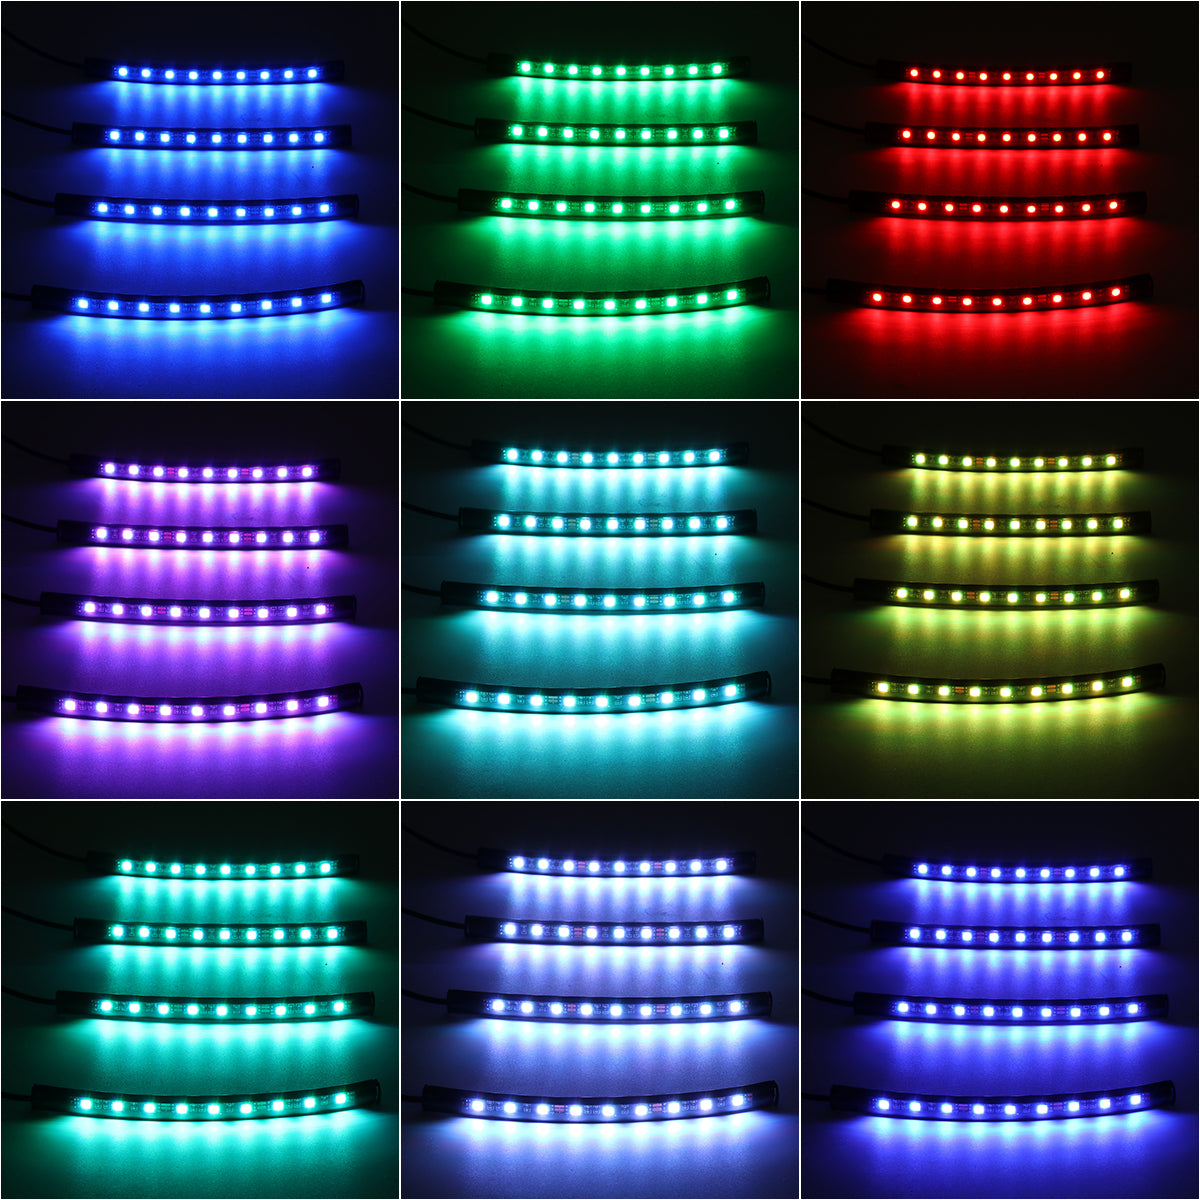 A769 New MB Unisex Women Men Flashing Plastic Glow LED Light Up Shades Glasses G